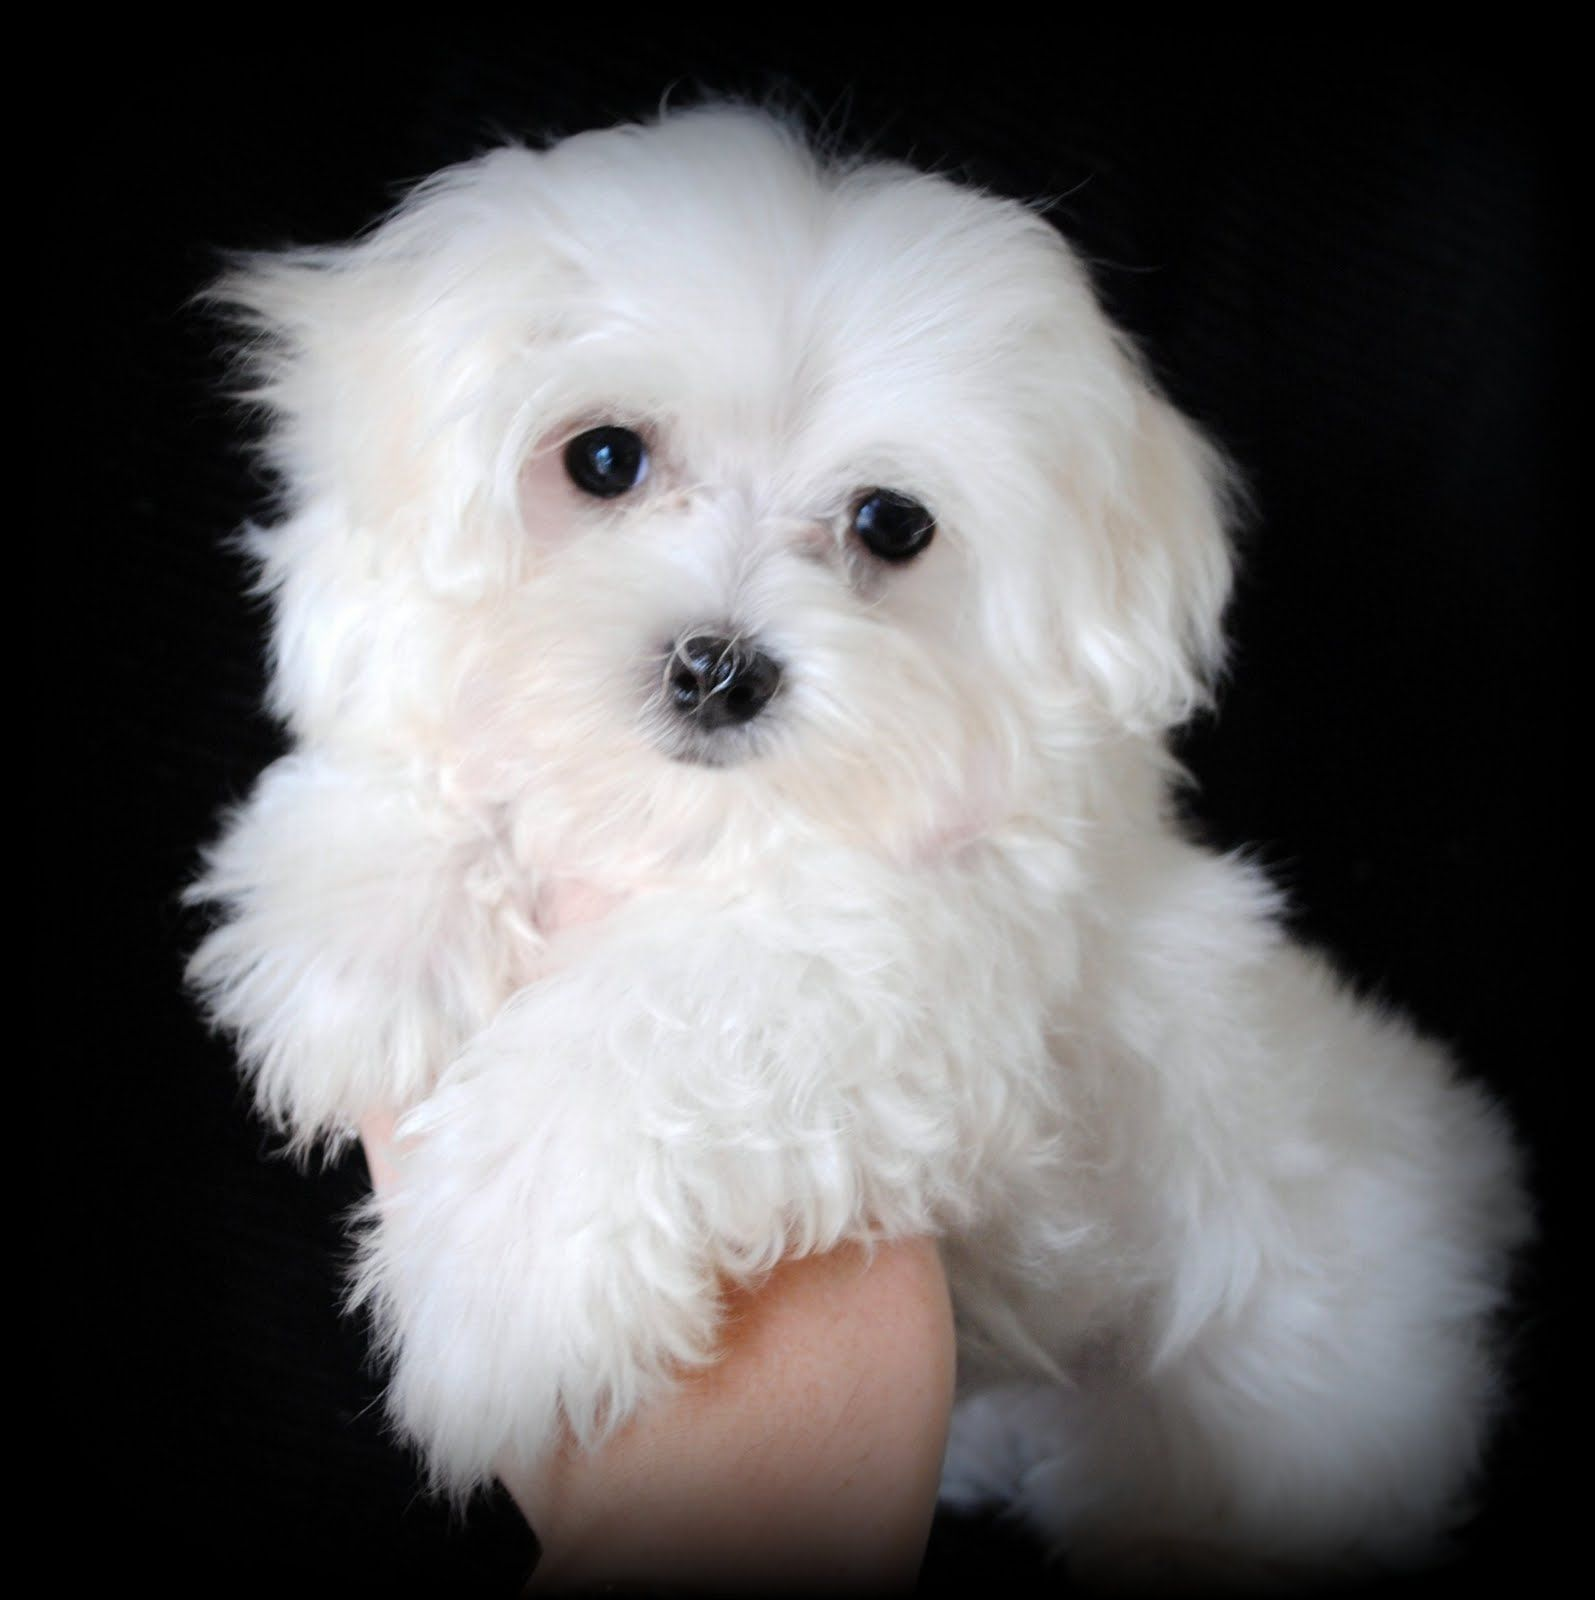 Maltese Puppies for Adoption | We also breed Maltipoos ... Black Maltese Poodle Puppies